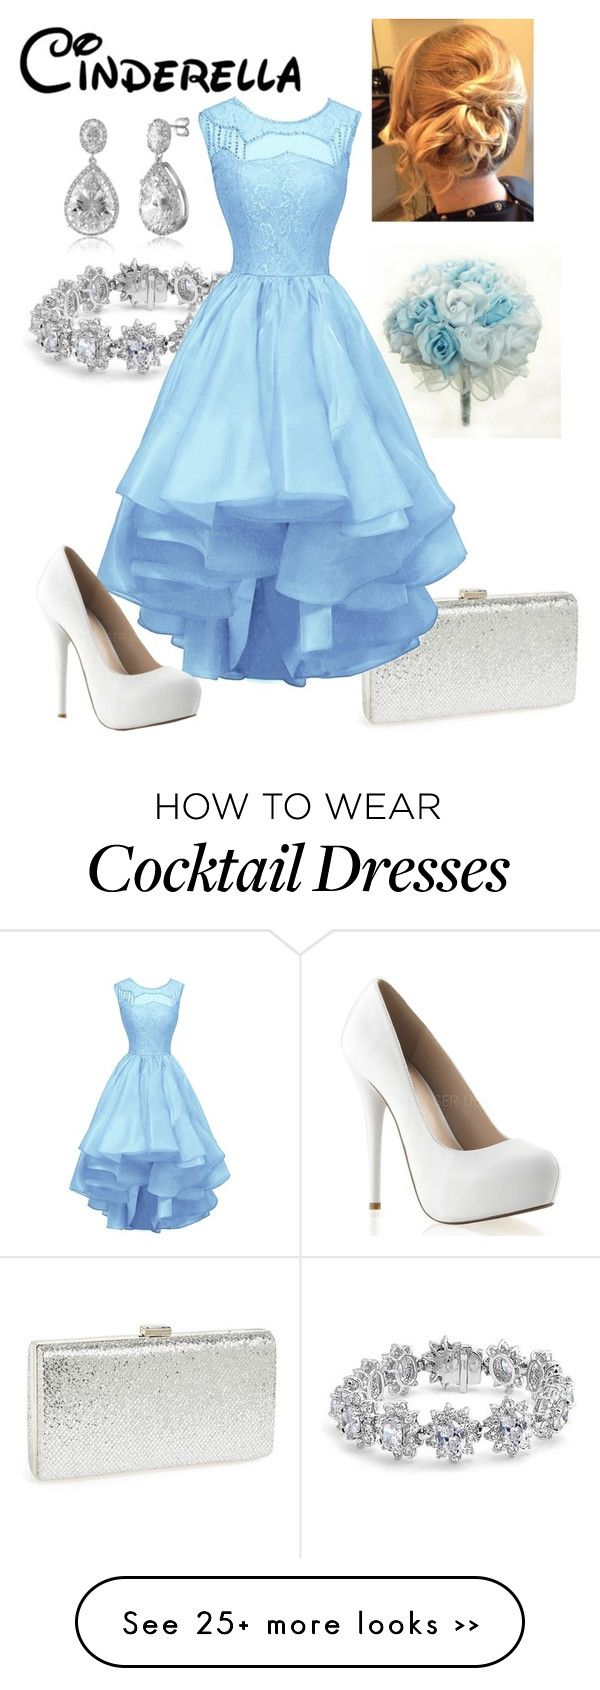 """""""Disney - Cinderella"""" by briony-jae on Polyvore featuring Natasha Couture, Bling Jewelry and BERRICLE"""